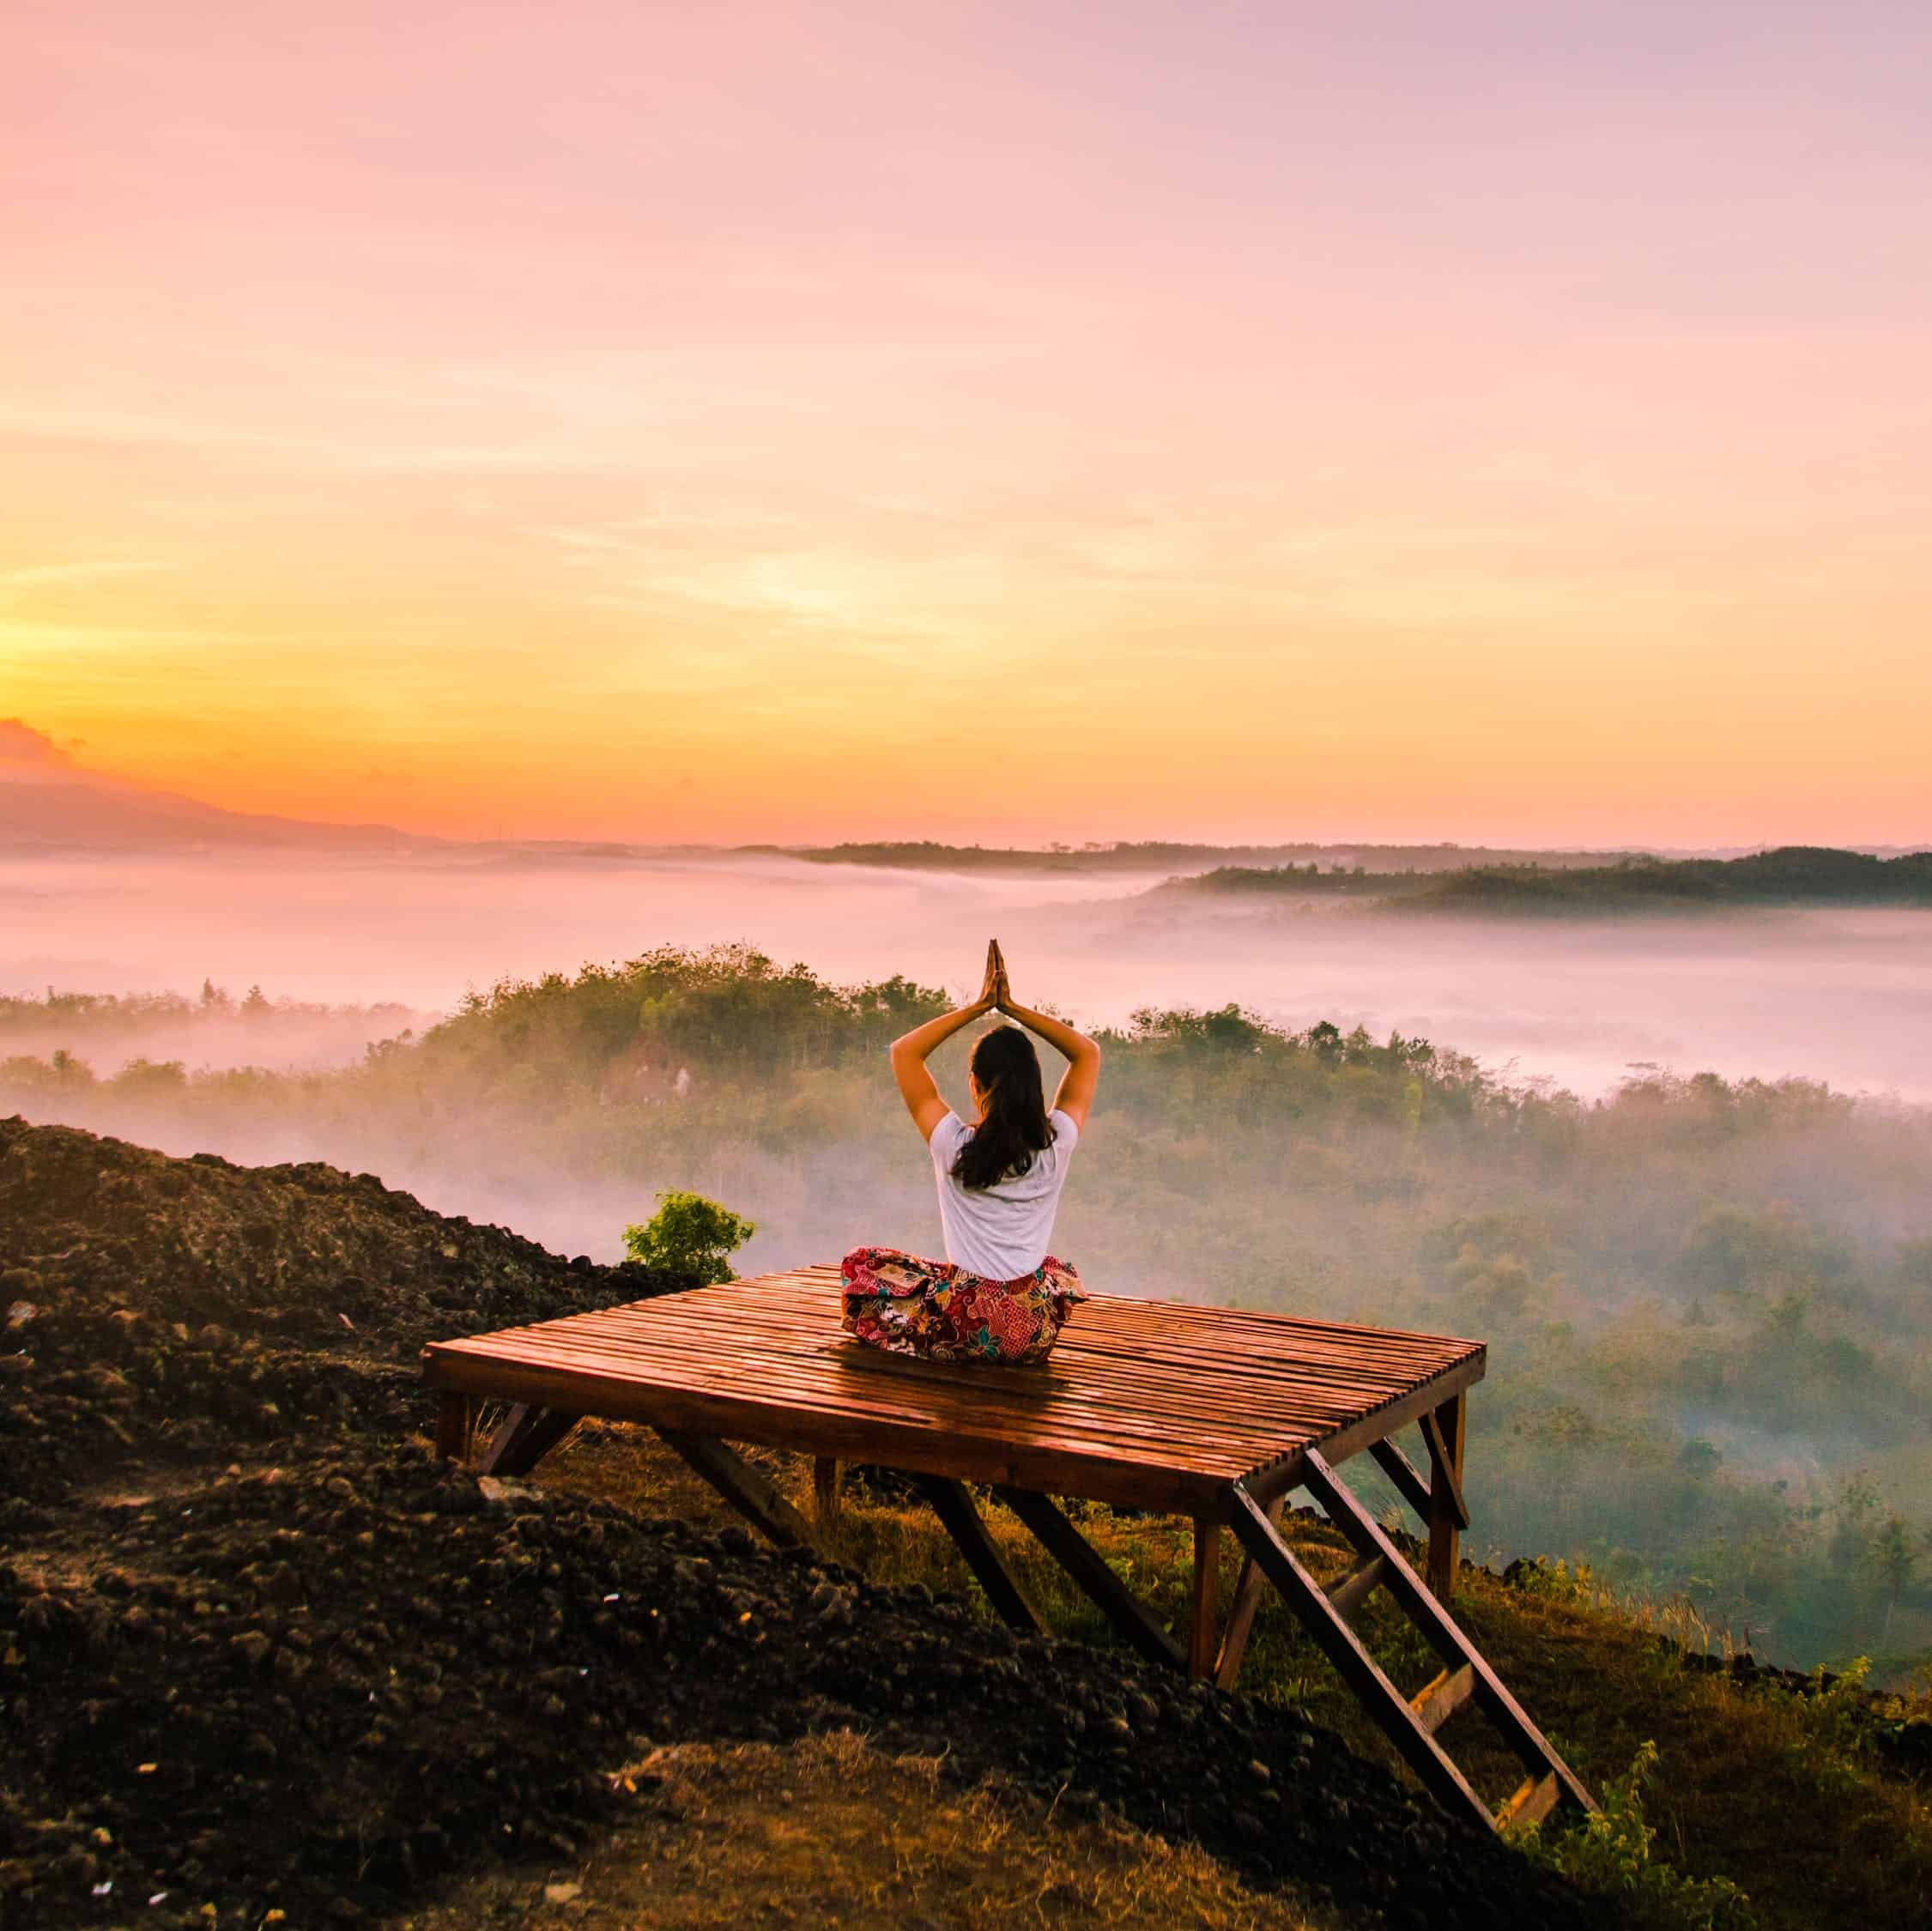 Self-Improvement Made Easy, 23 Exercises to Transform Your Life